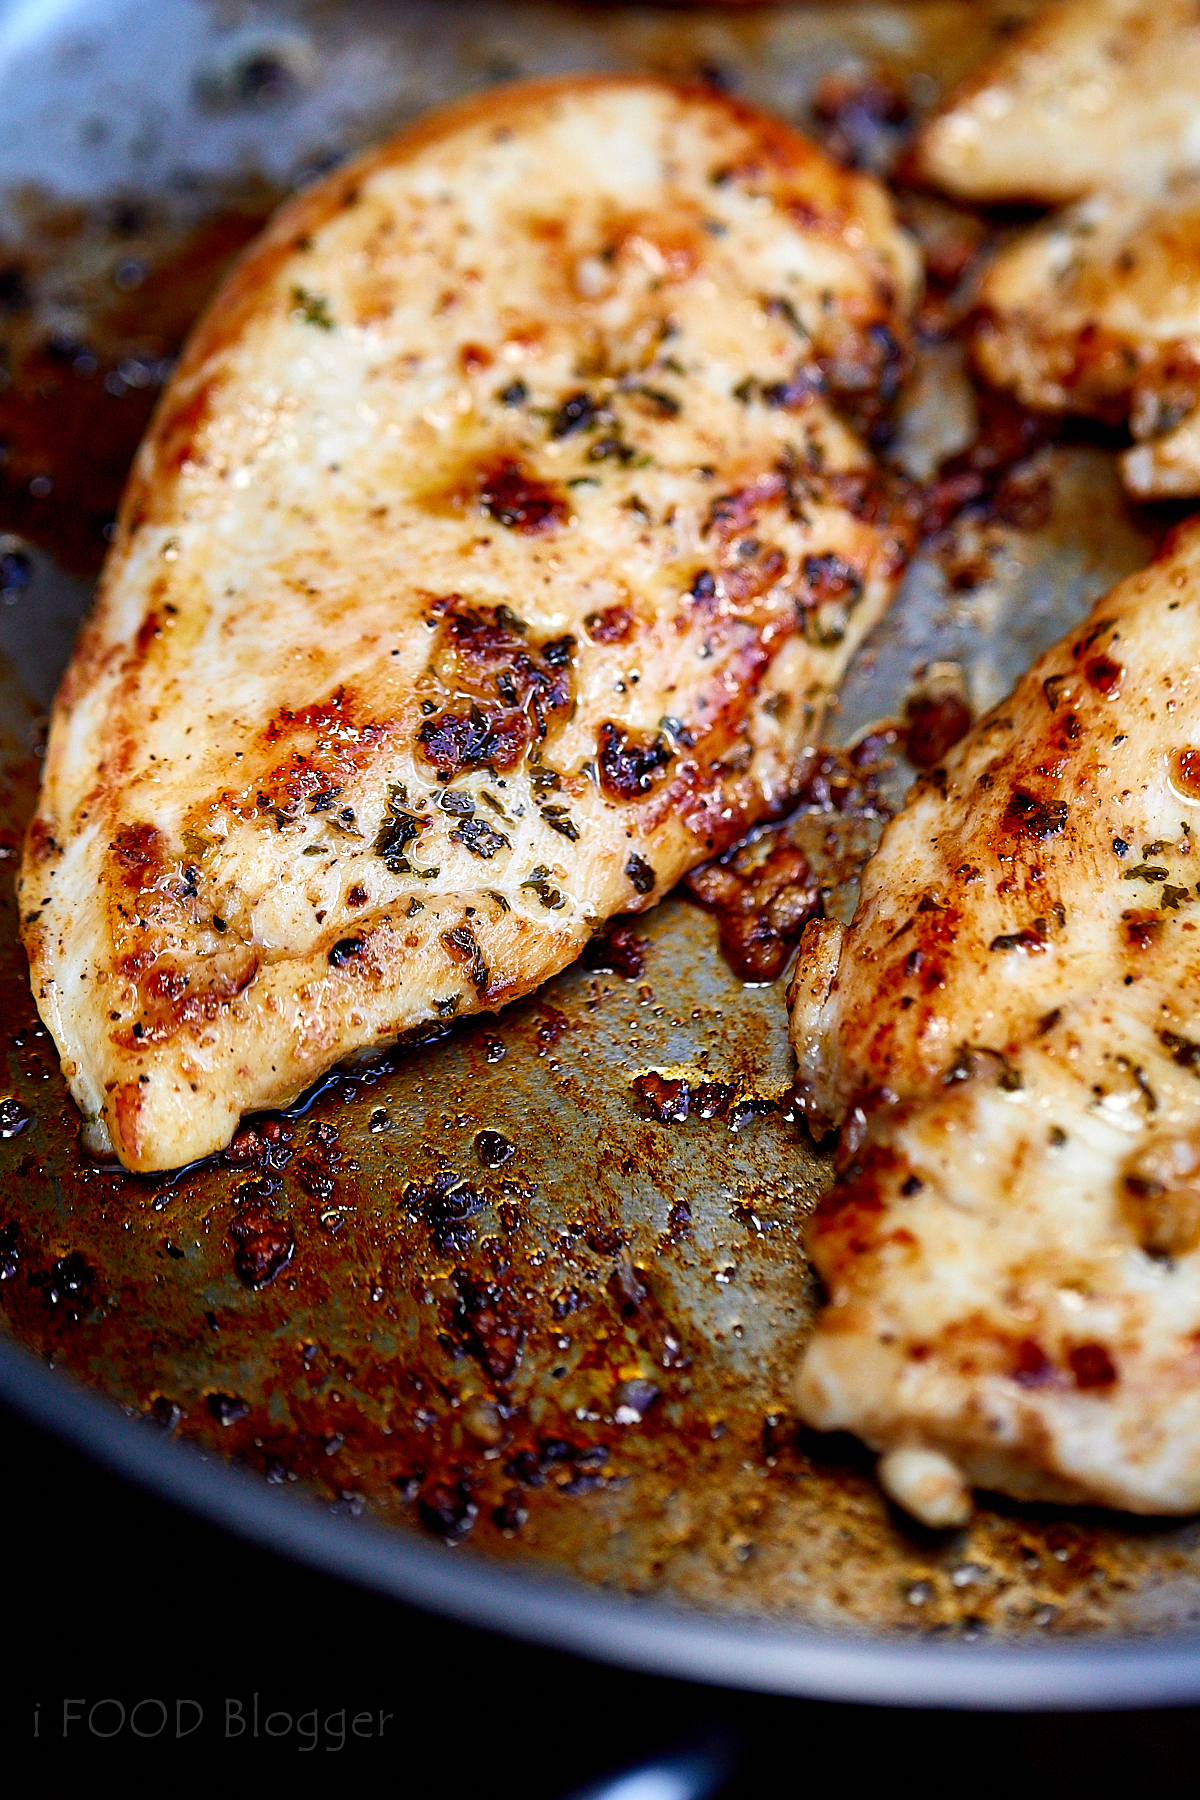 Pan Fried Cajun Chicken - Cooking with Thas - Healthy ... |Pan Cooked Chicken